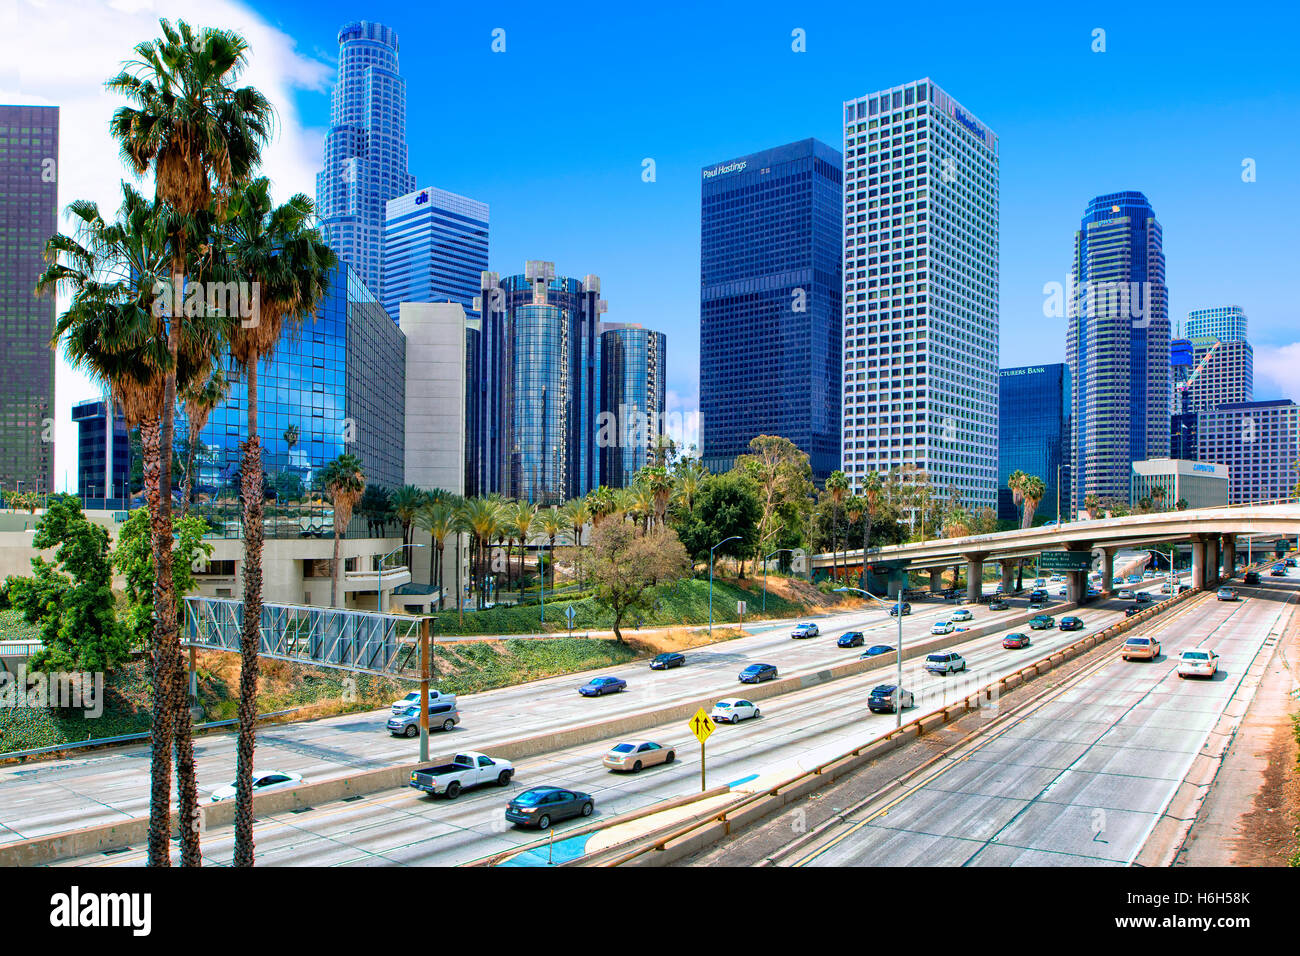 Harbor freeway in Los Angeles downtown Immagini Stock